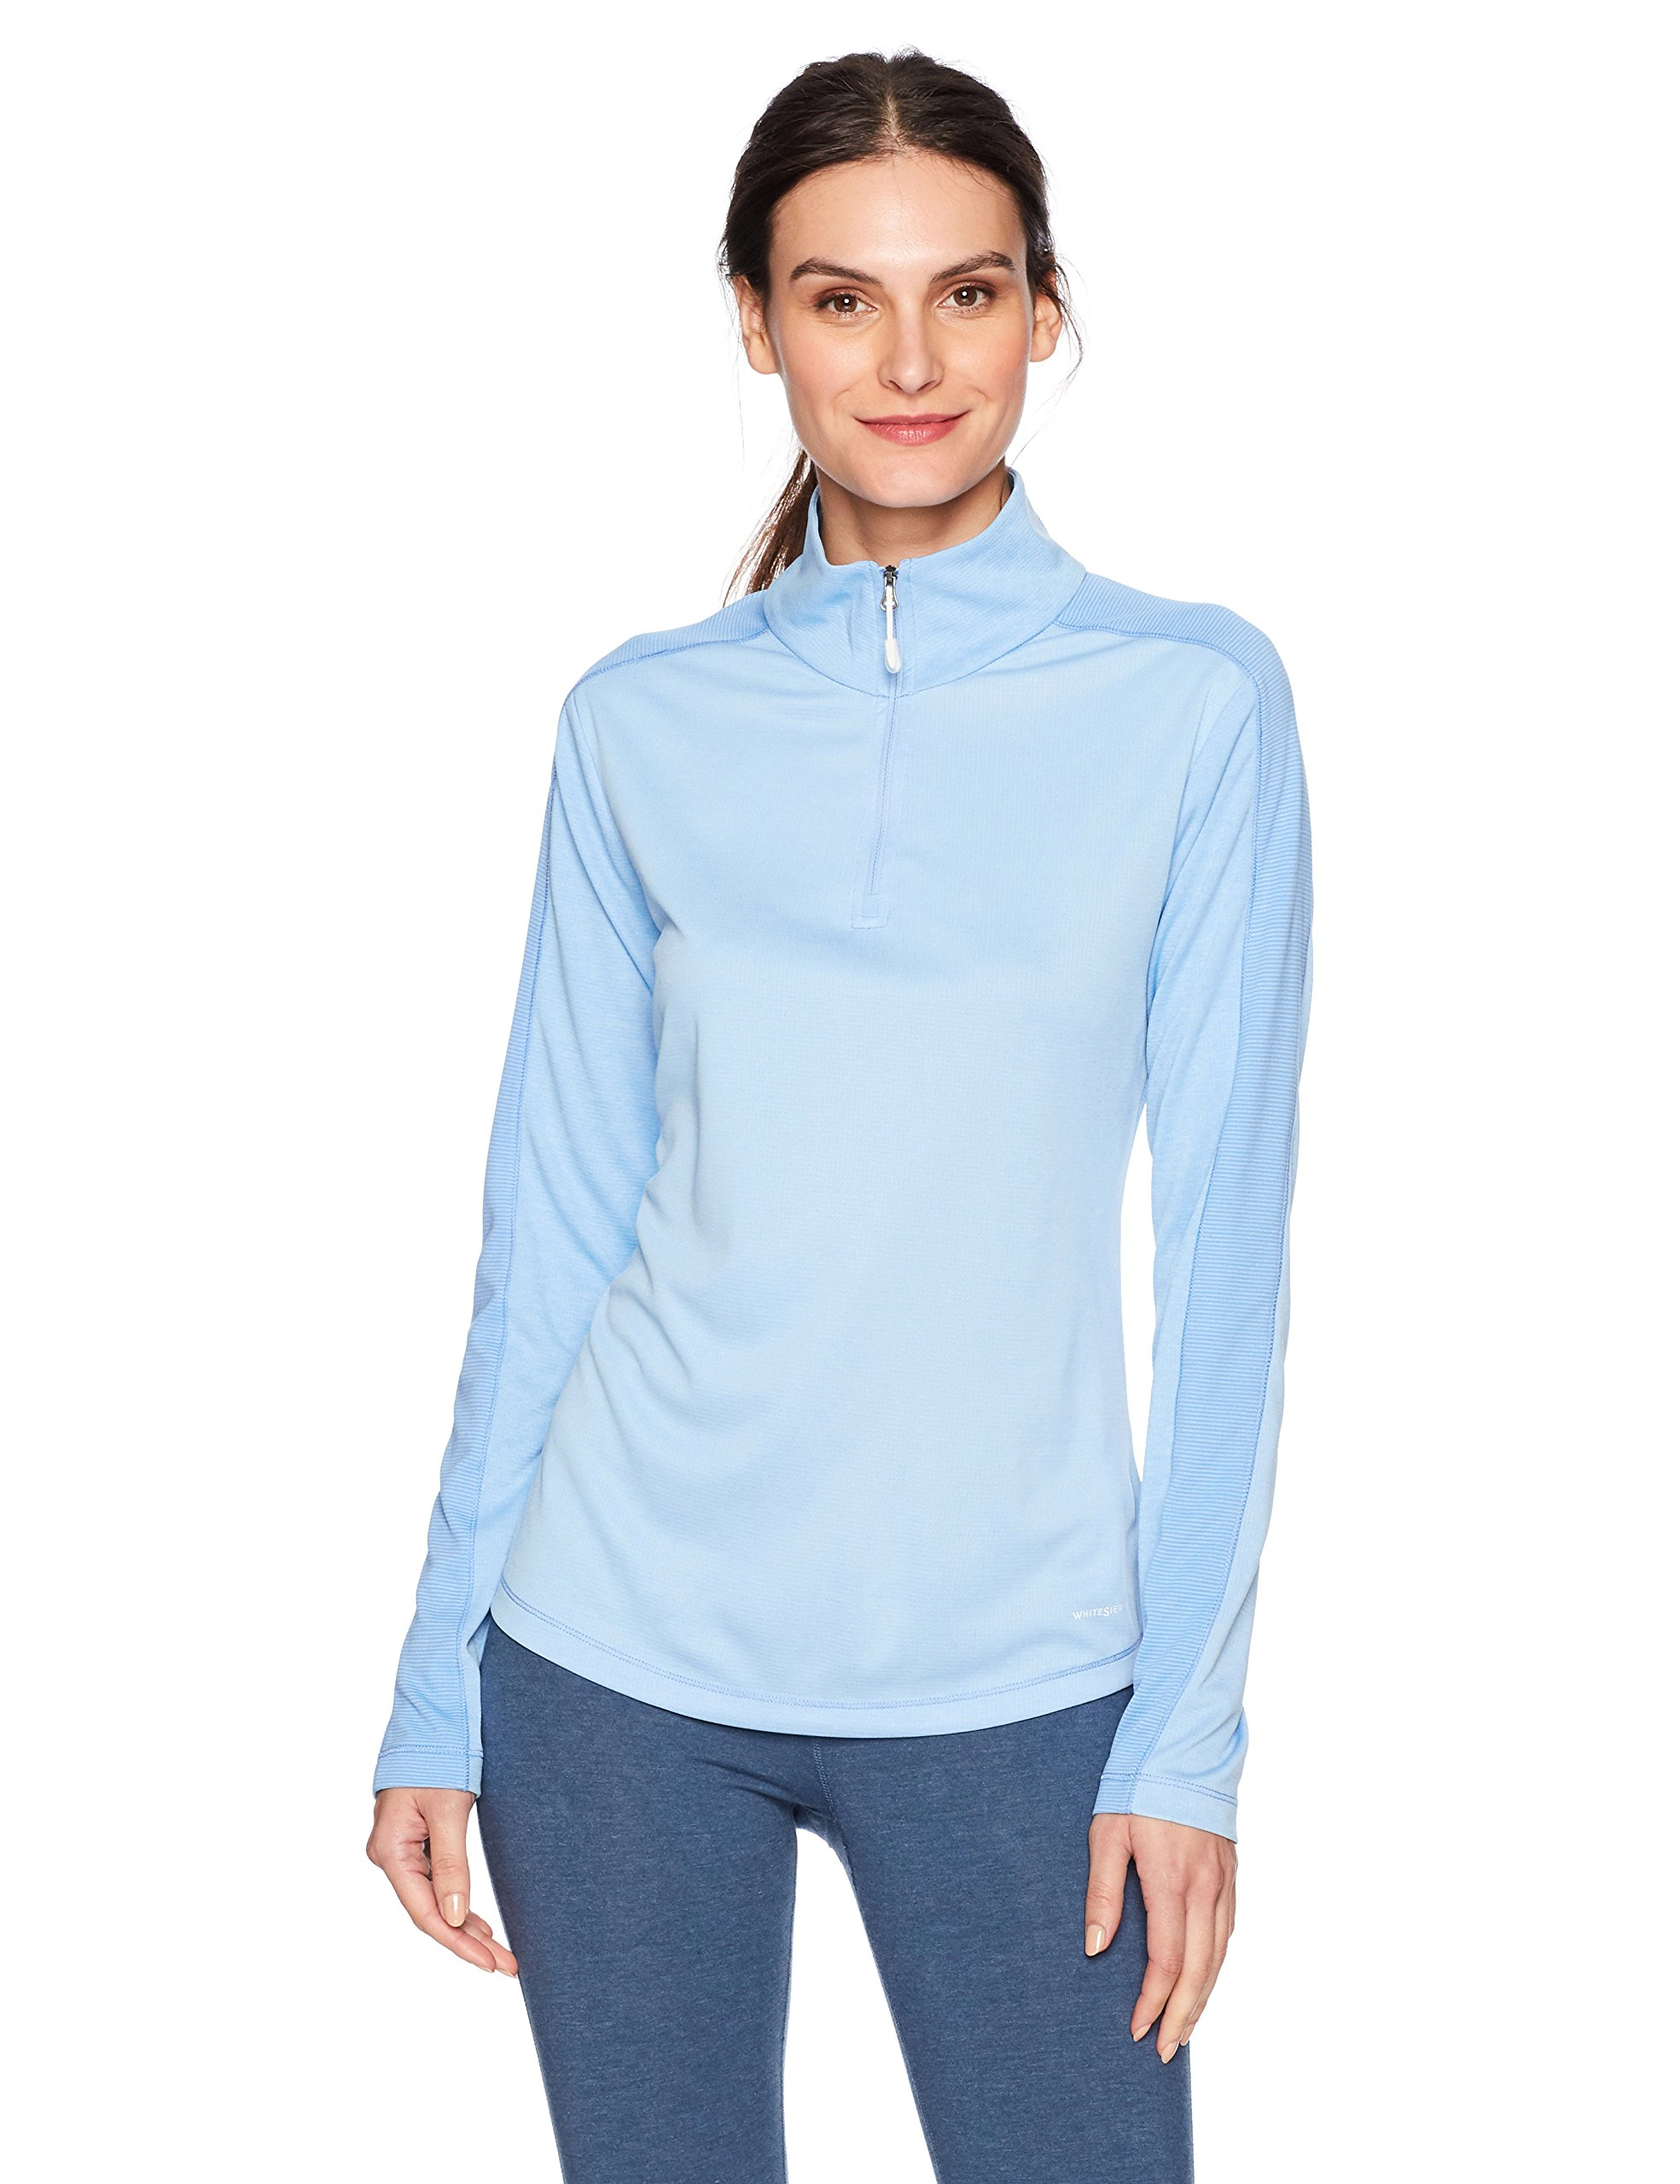 White Sierra Sleek Rock Quarter Zip Base Layer, Sky Blue, Large